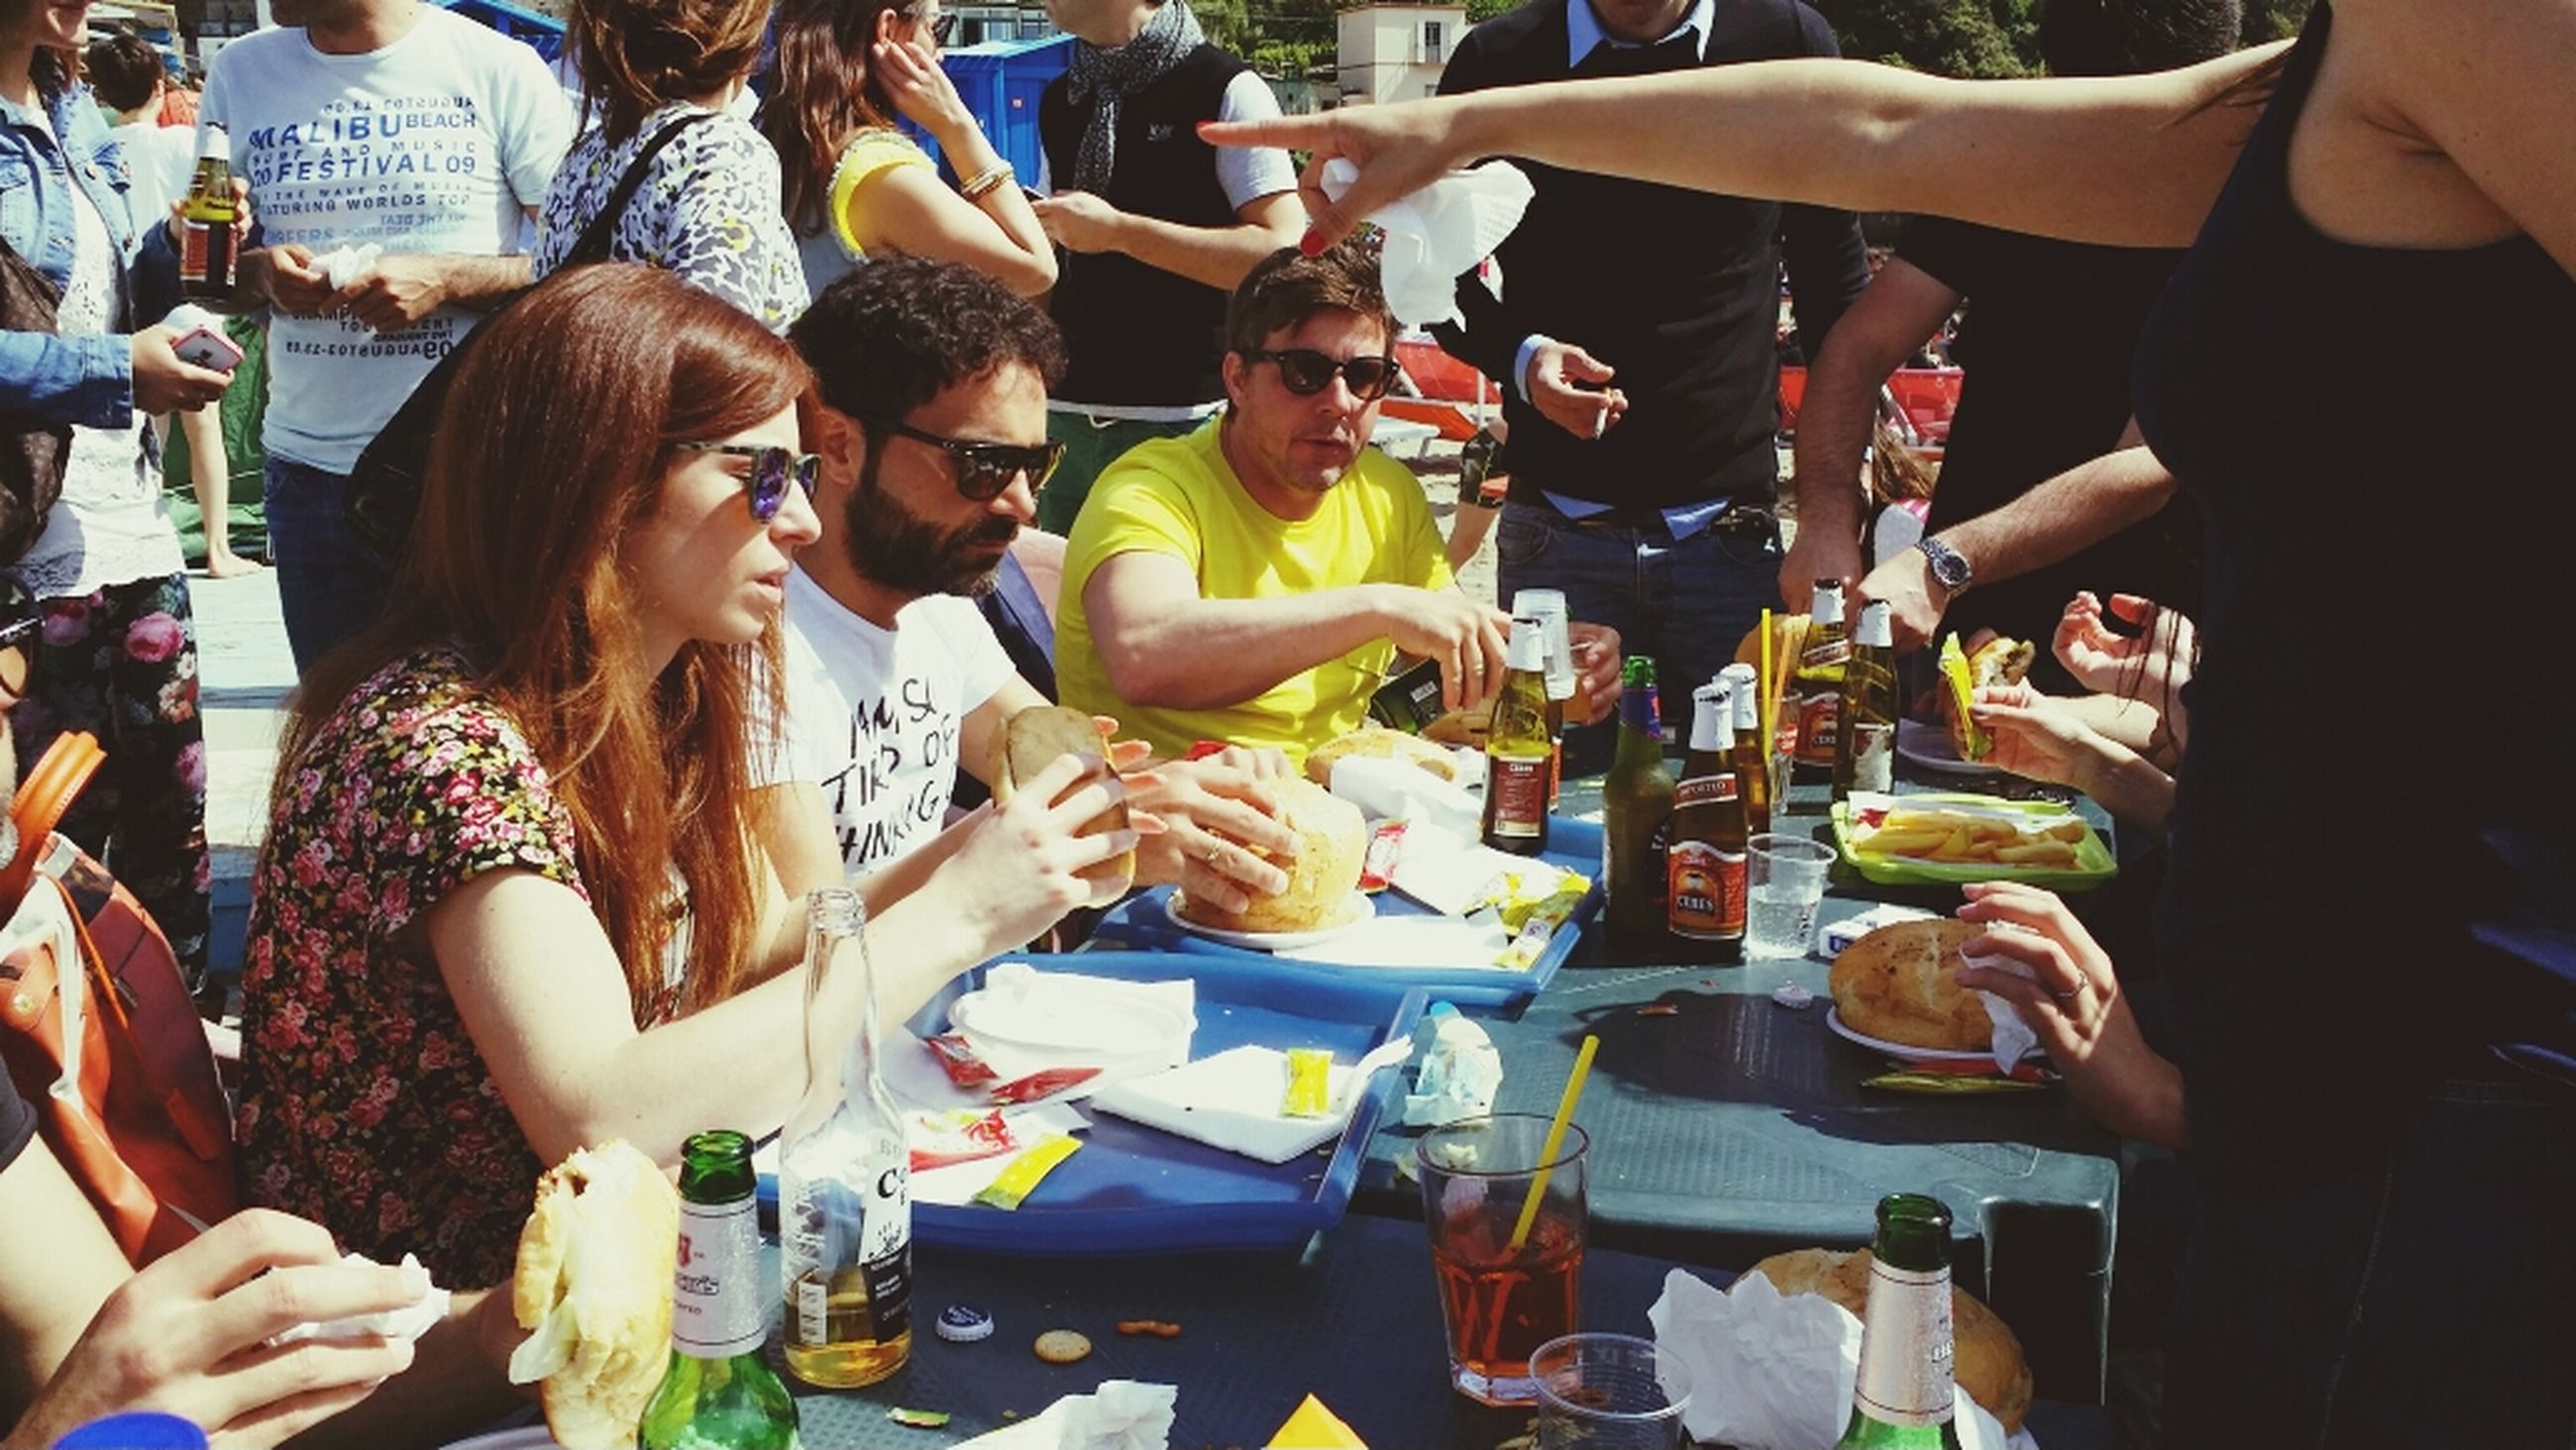 lifestyles, togetherness, large group of people, men, person, leisure activity, sitting, friendship, food and drink, medium group of people, holding, indoors, crowd, bonding, restaurant, celebration